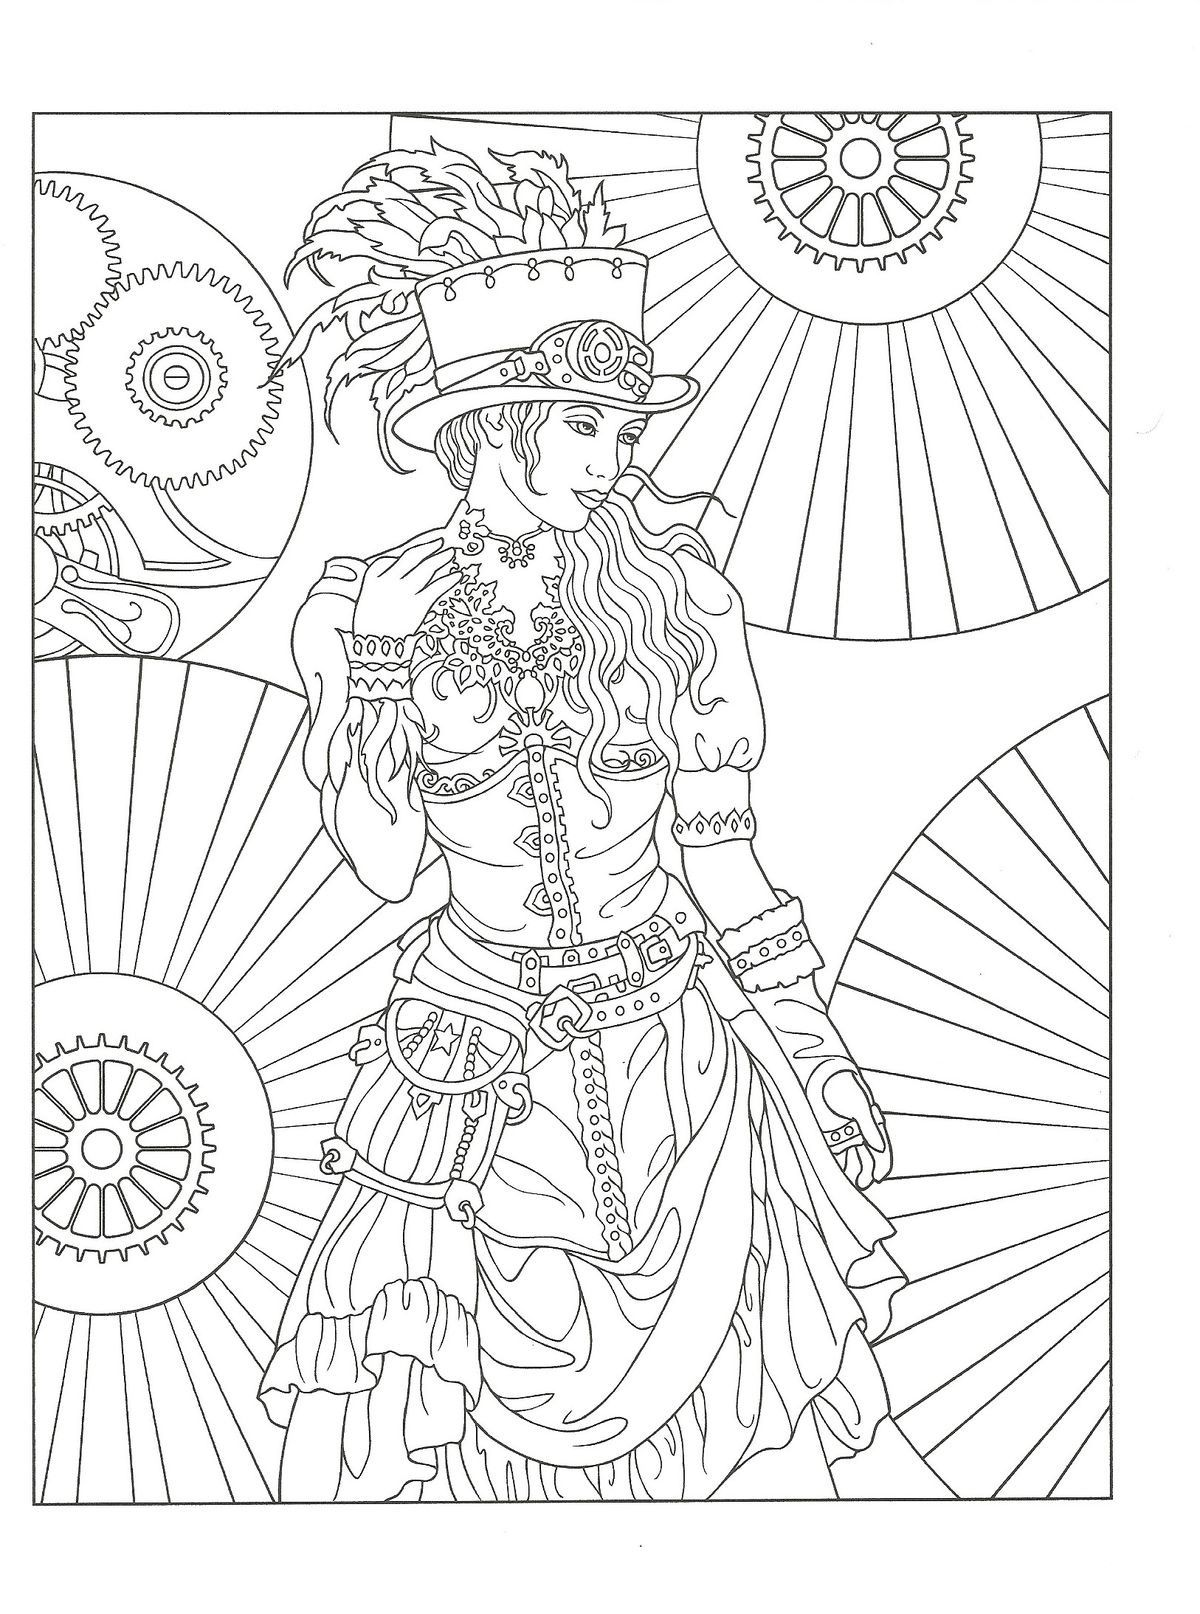 pinval wilson on coloring pages  steampunk coloring